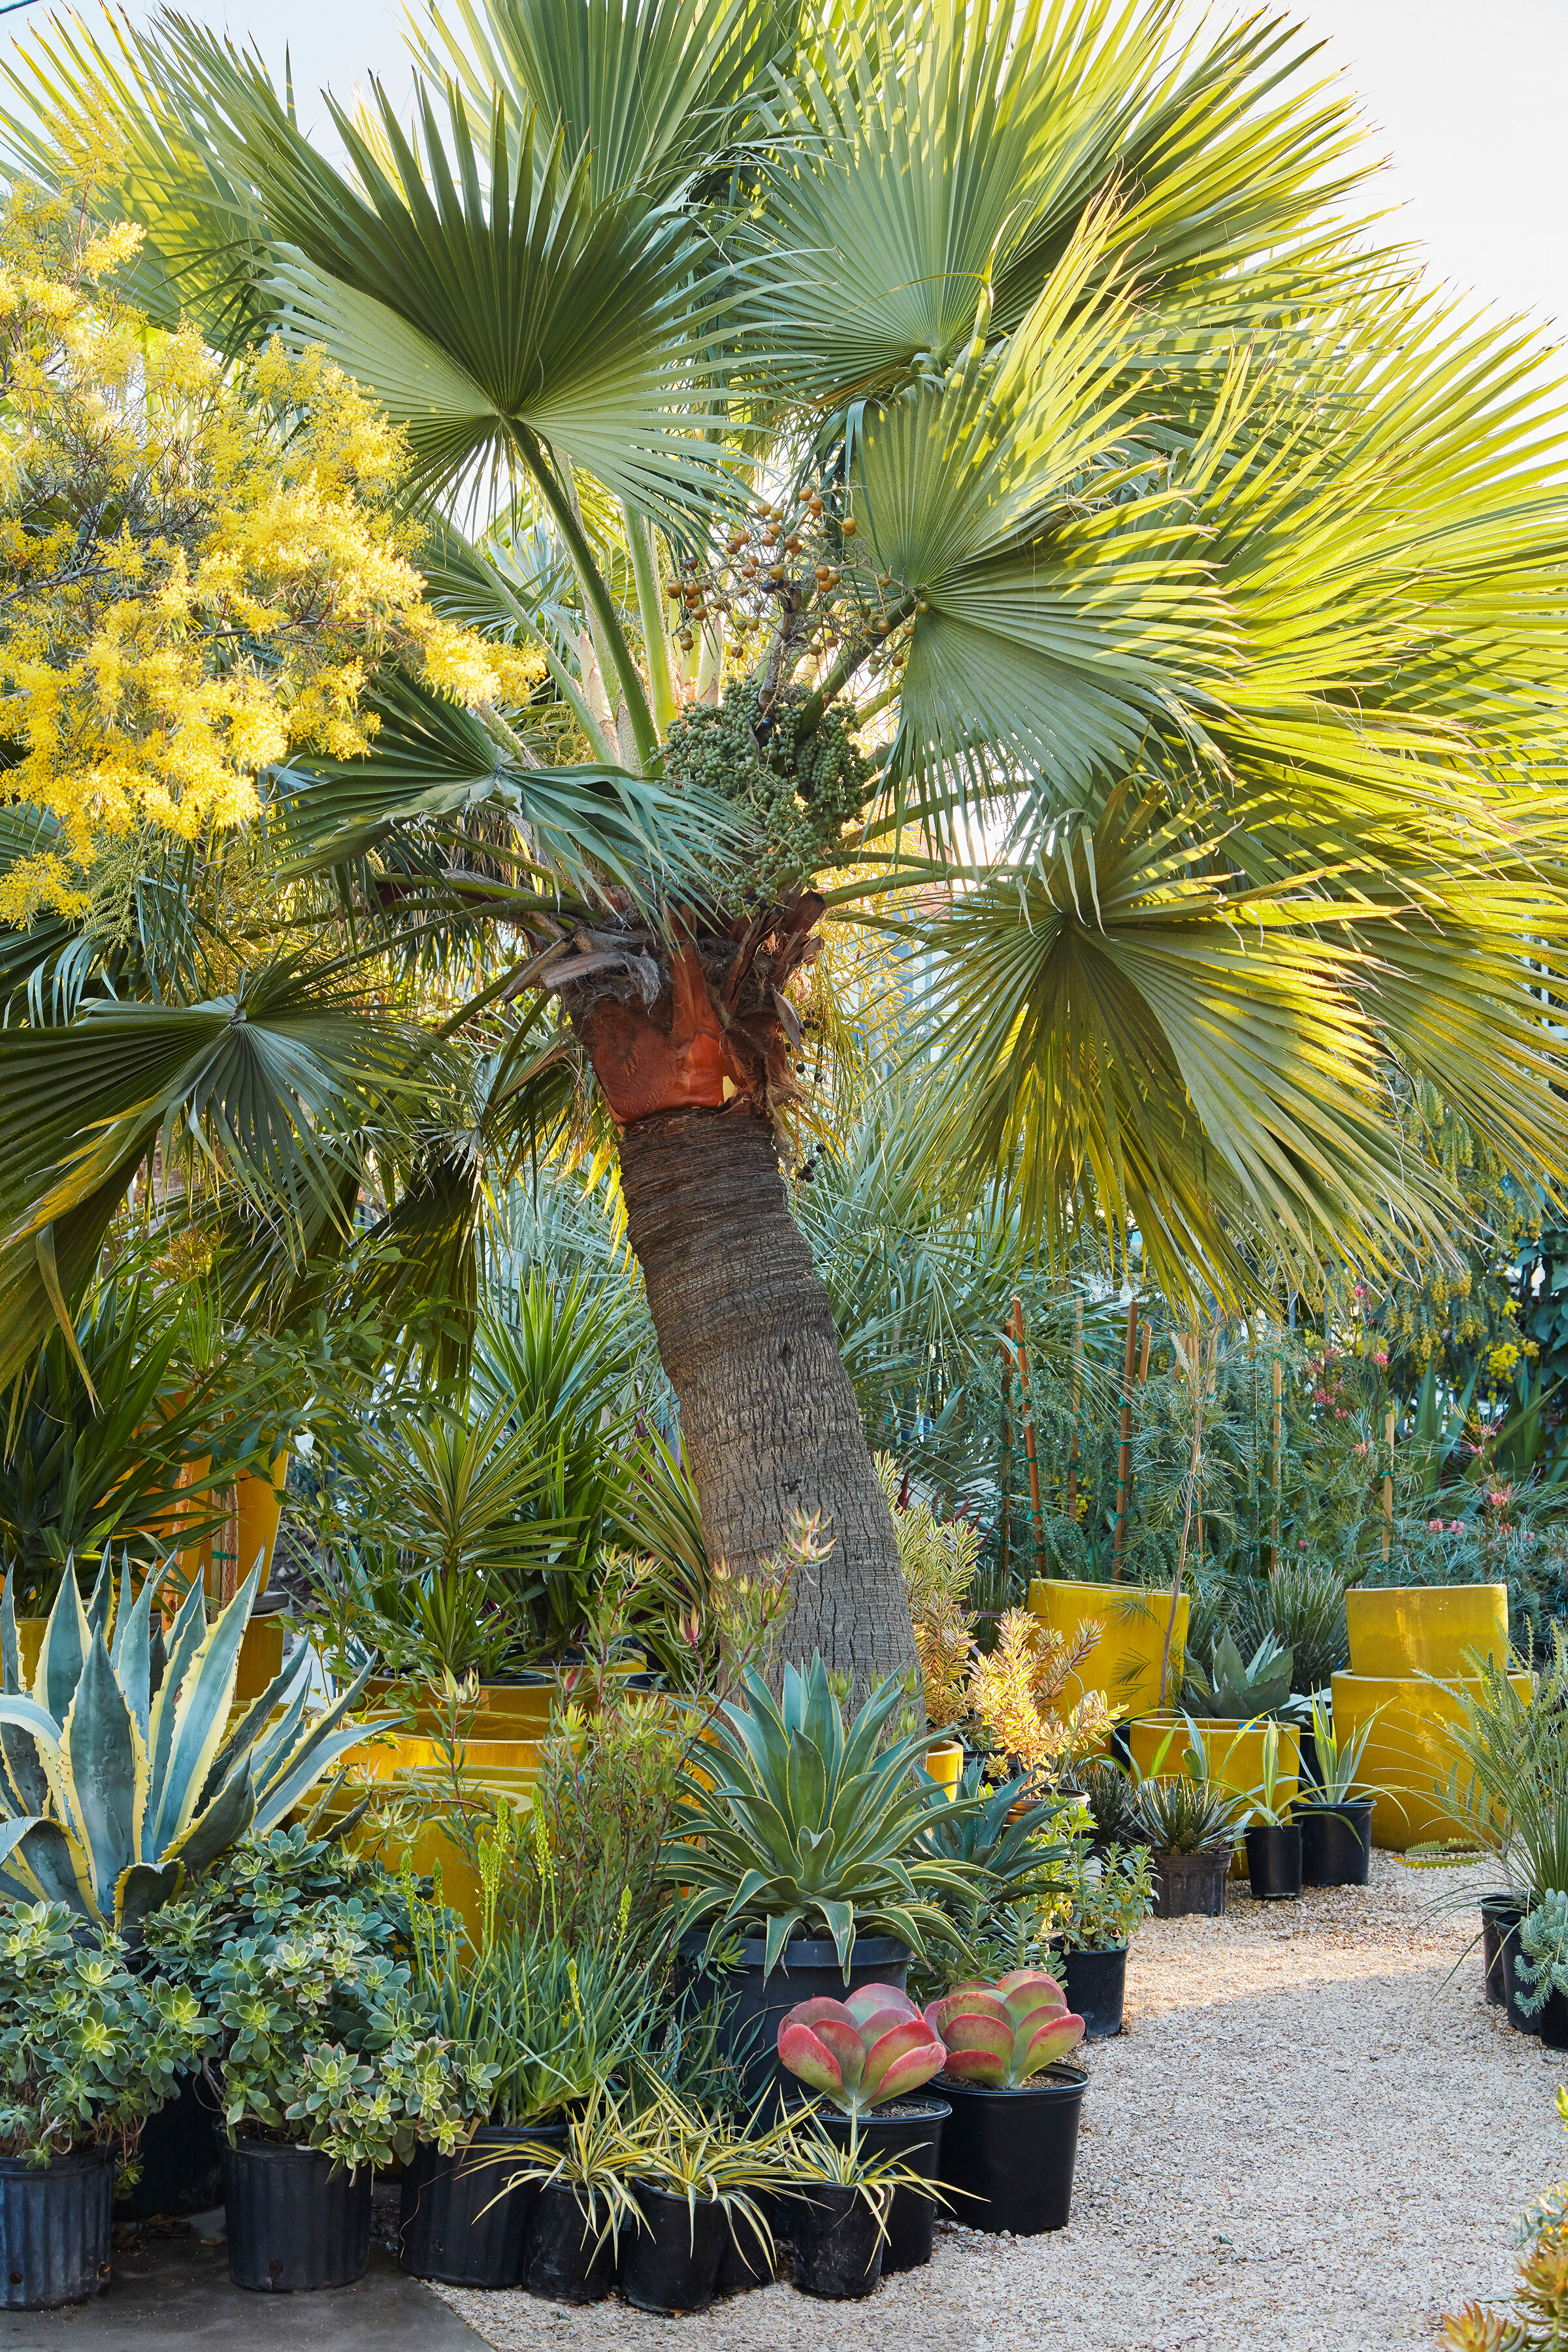 Brahea edulis, the Guadalupe palm, at Flora Grubb Gardens